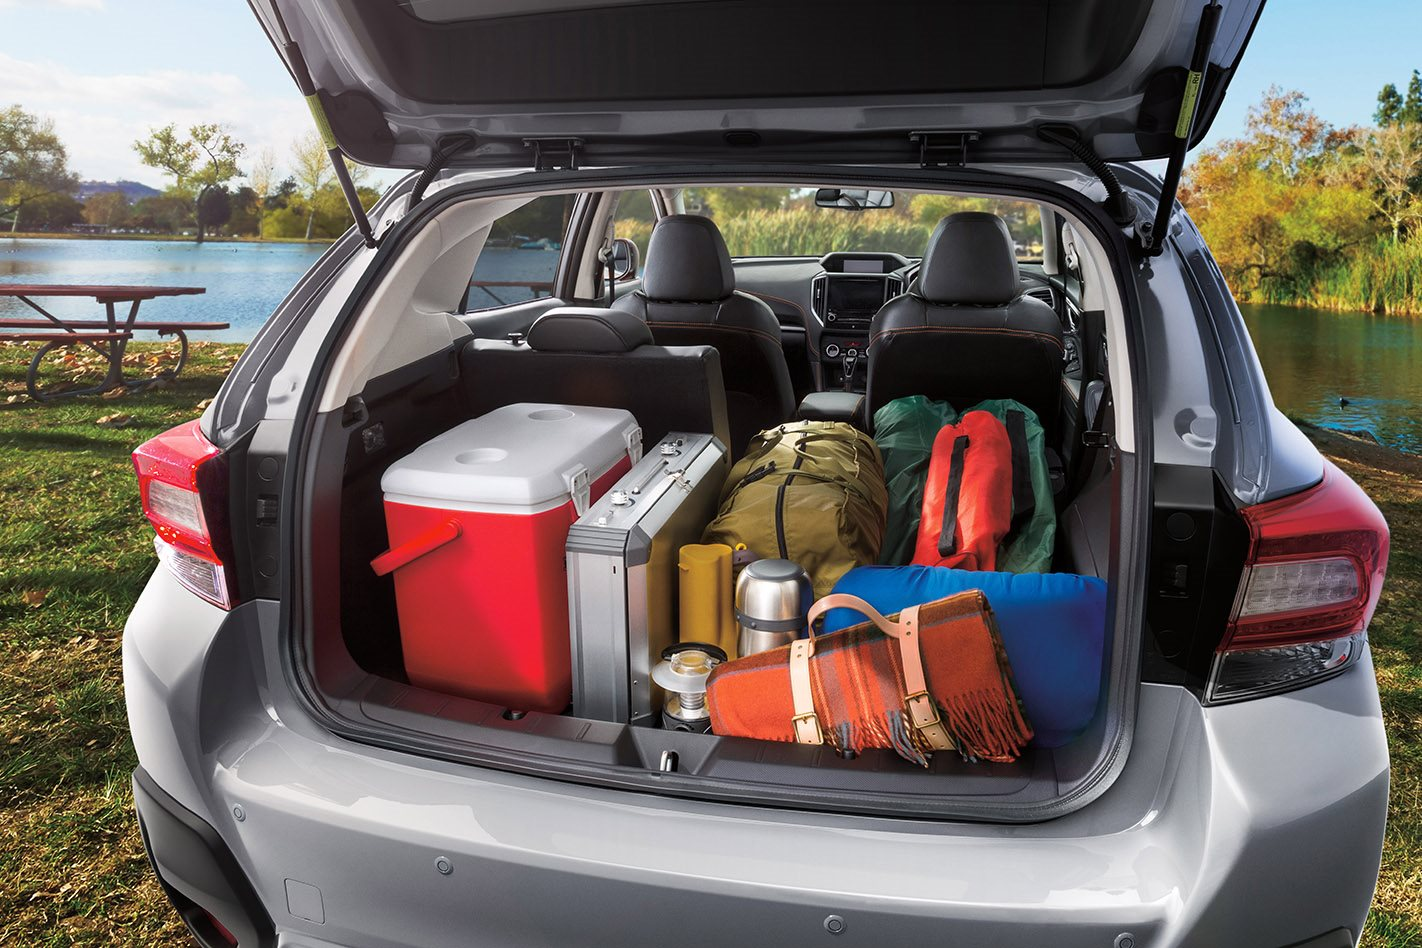 Ford Escape Trunk Space Dimensions >> Boot space of Australia's best-selling SUVs